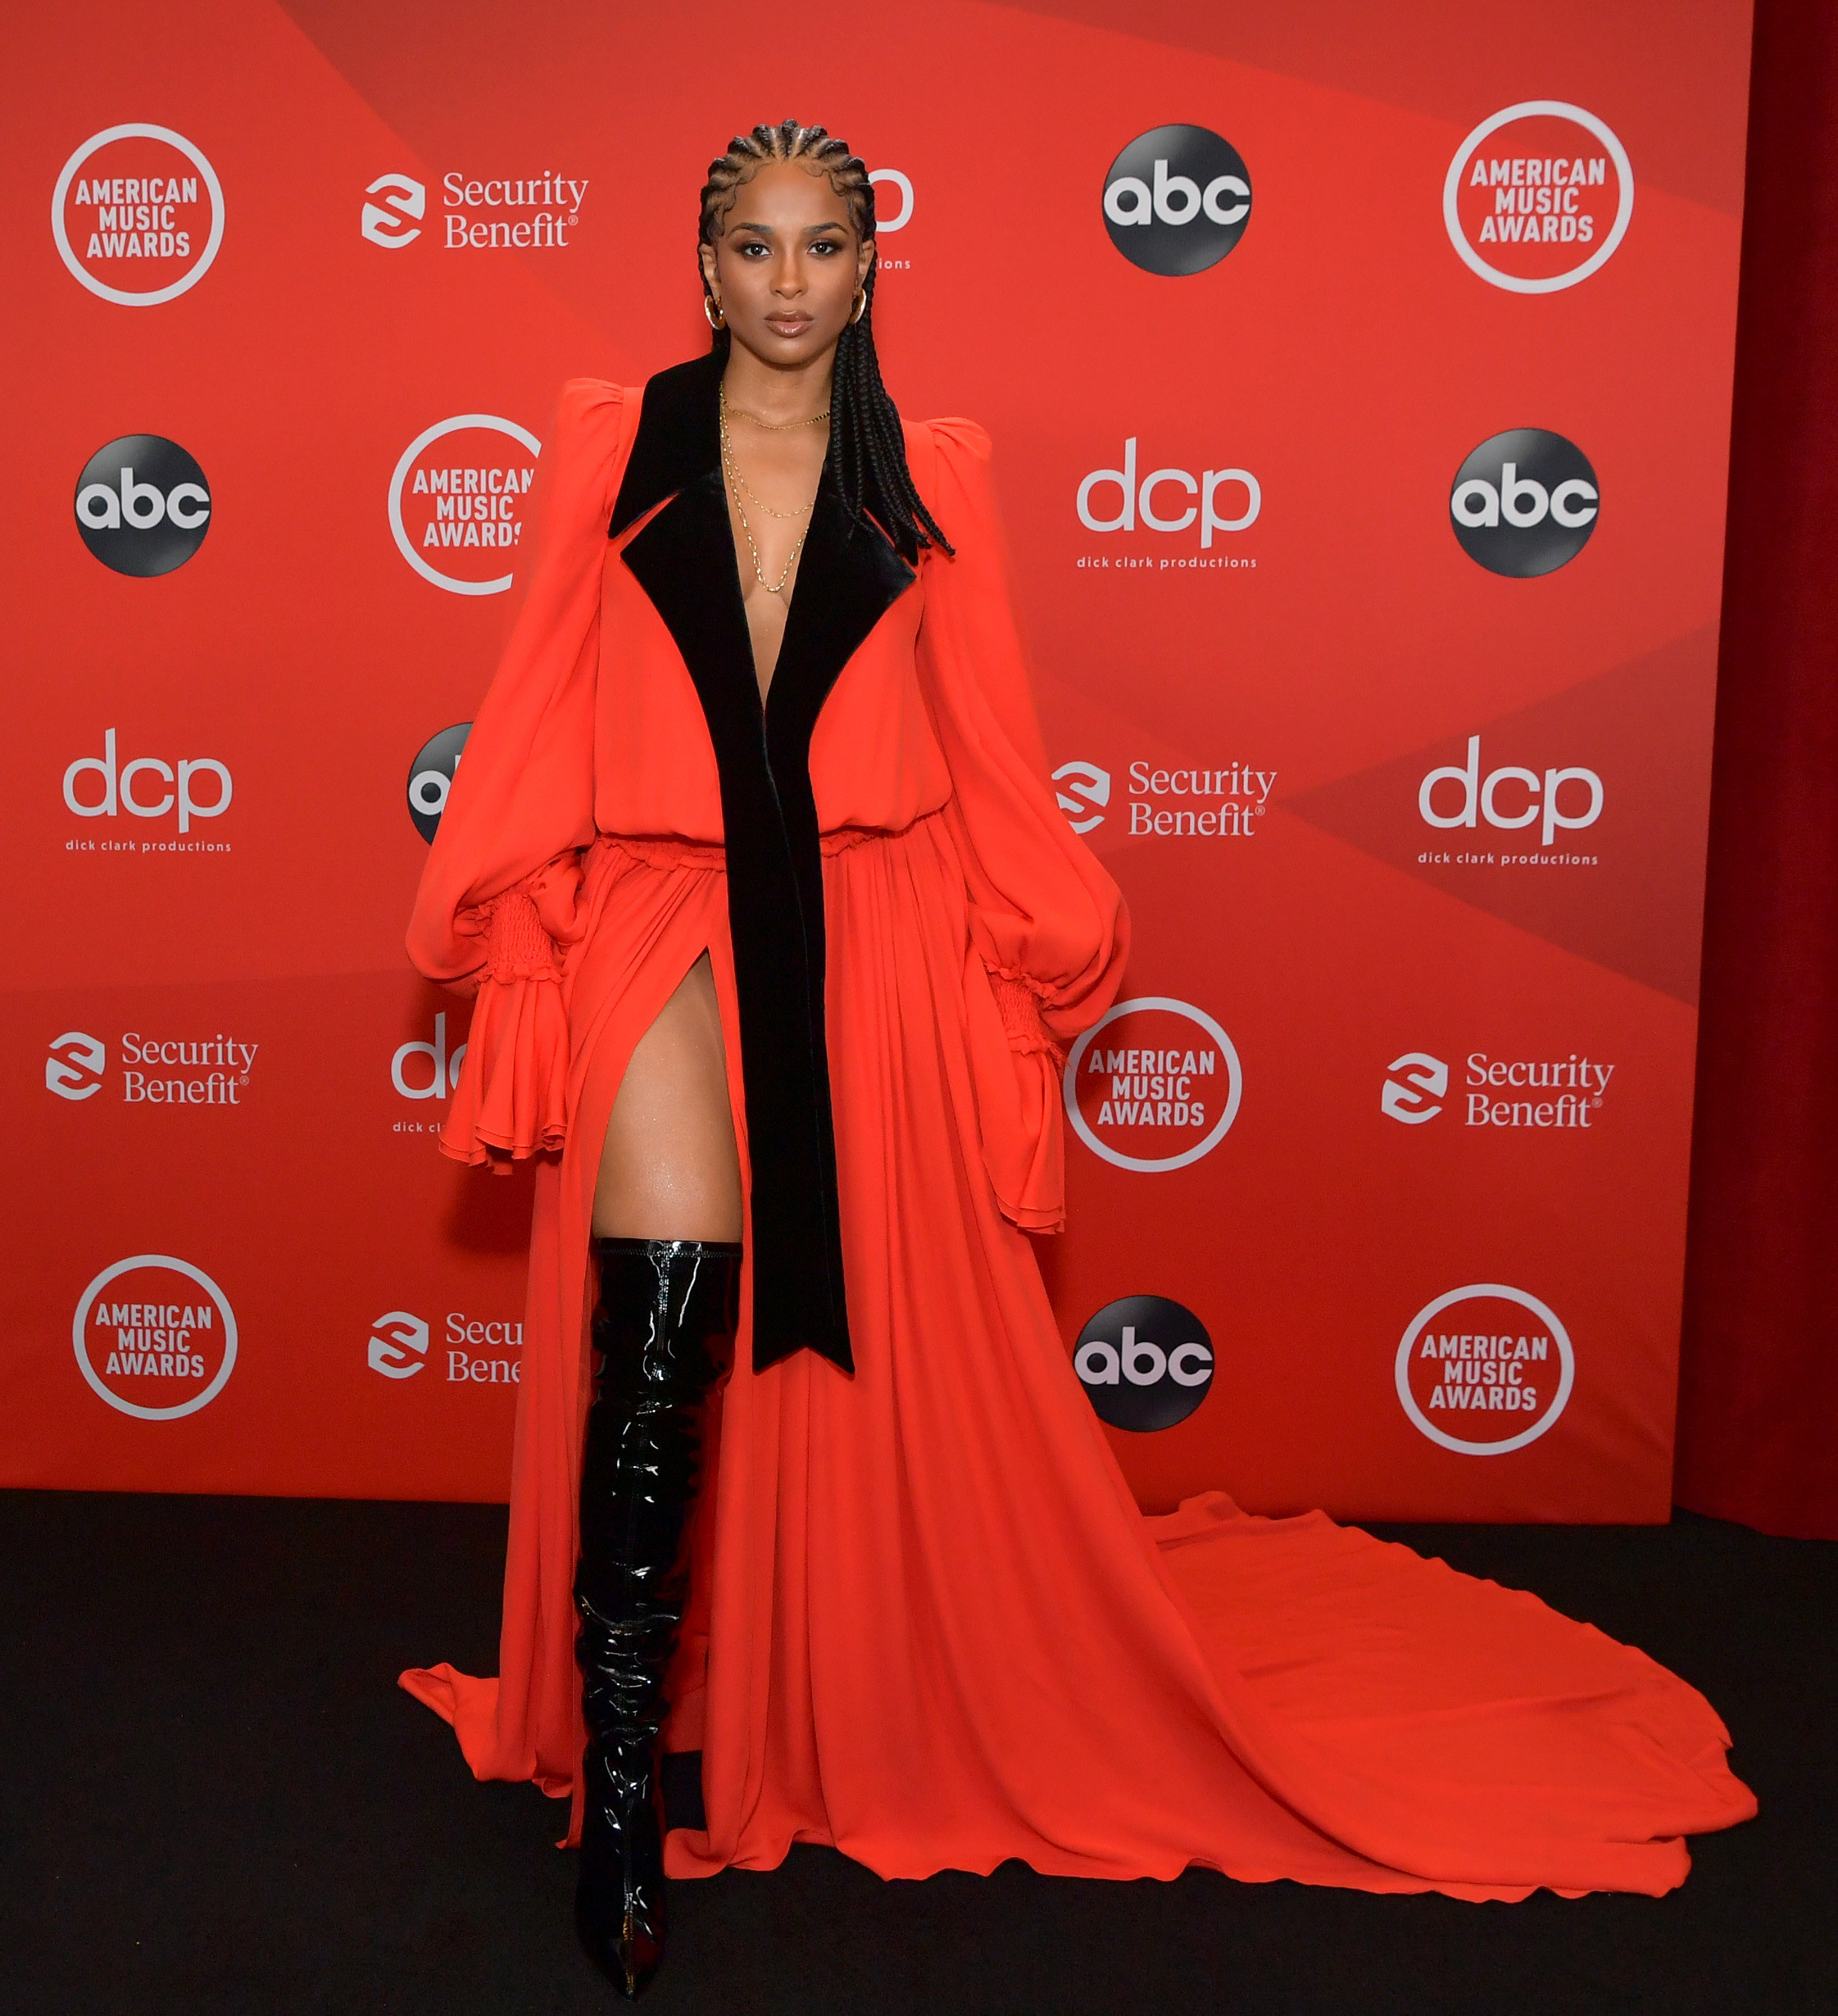 Ciara attends the 2020 American Music Awards wearing corn rows, a long gown, and thigh-high boots